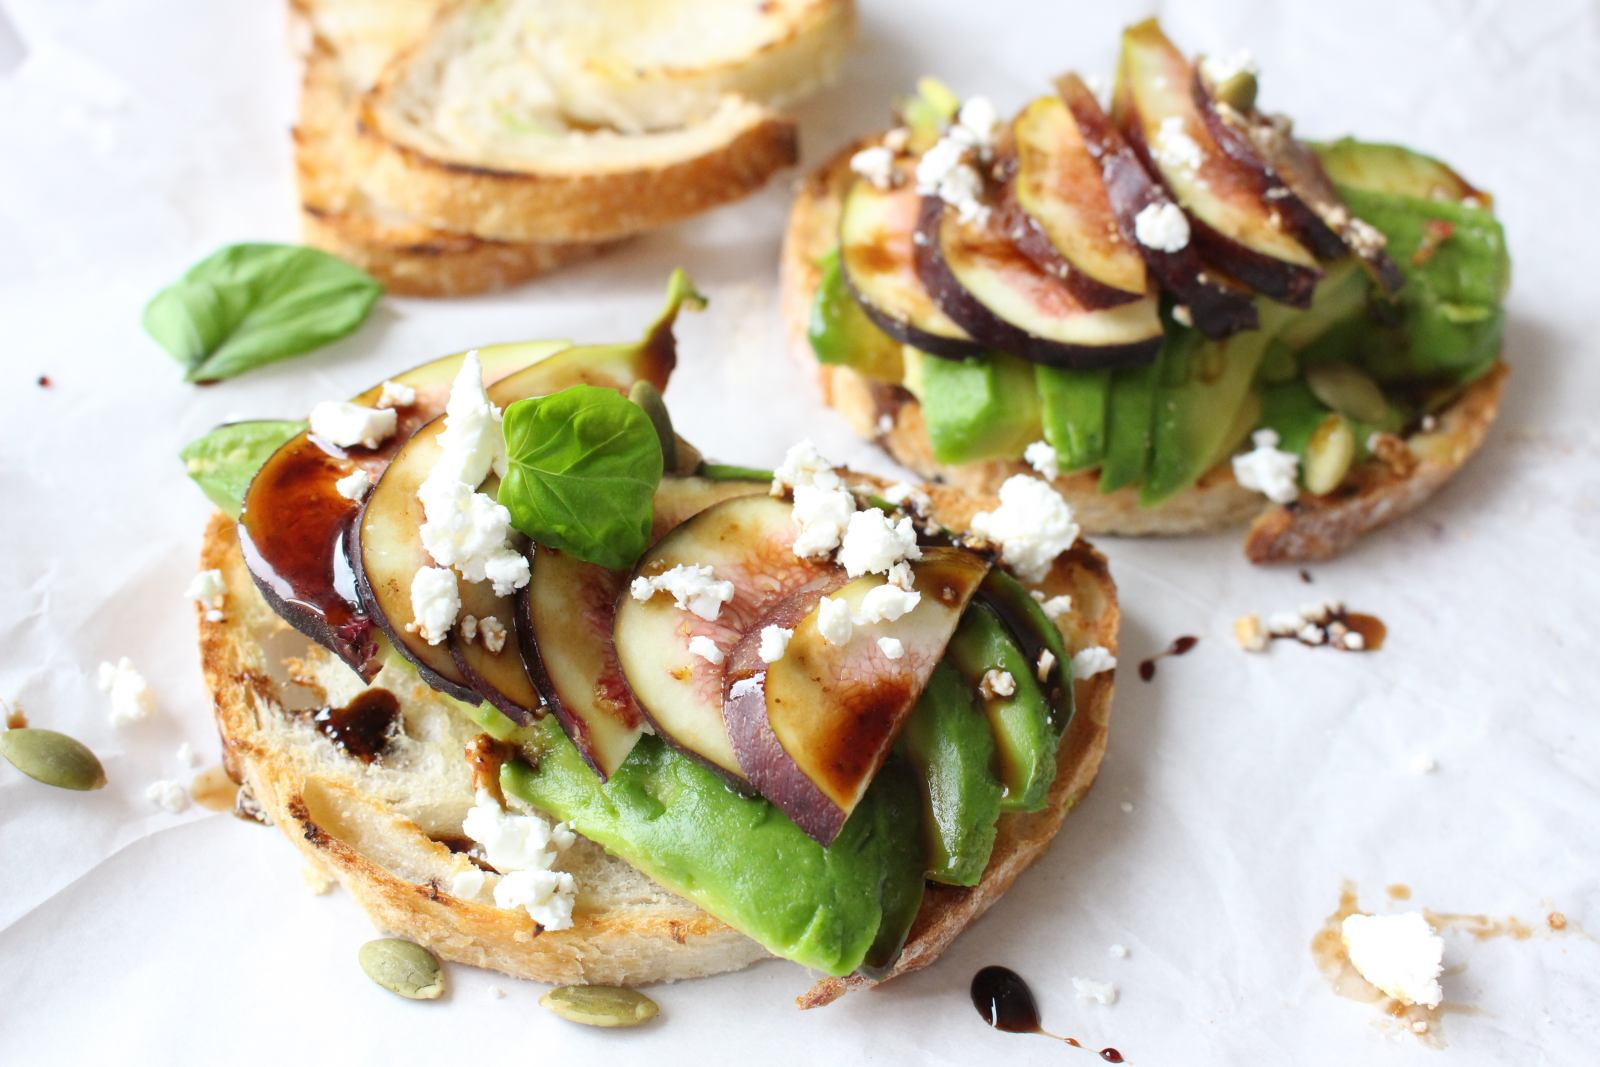 Avocado On Toast With Fresh Figs And Balsamic Reduction